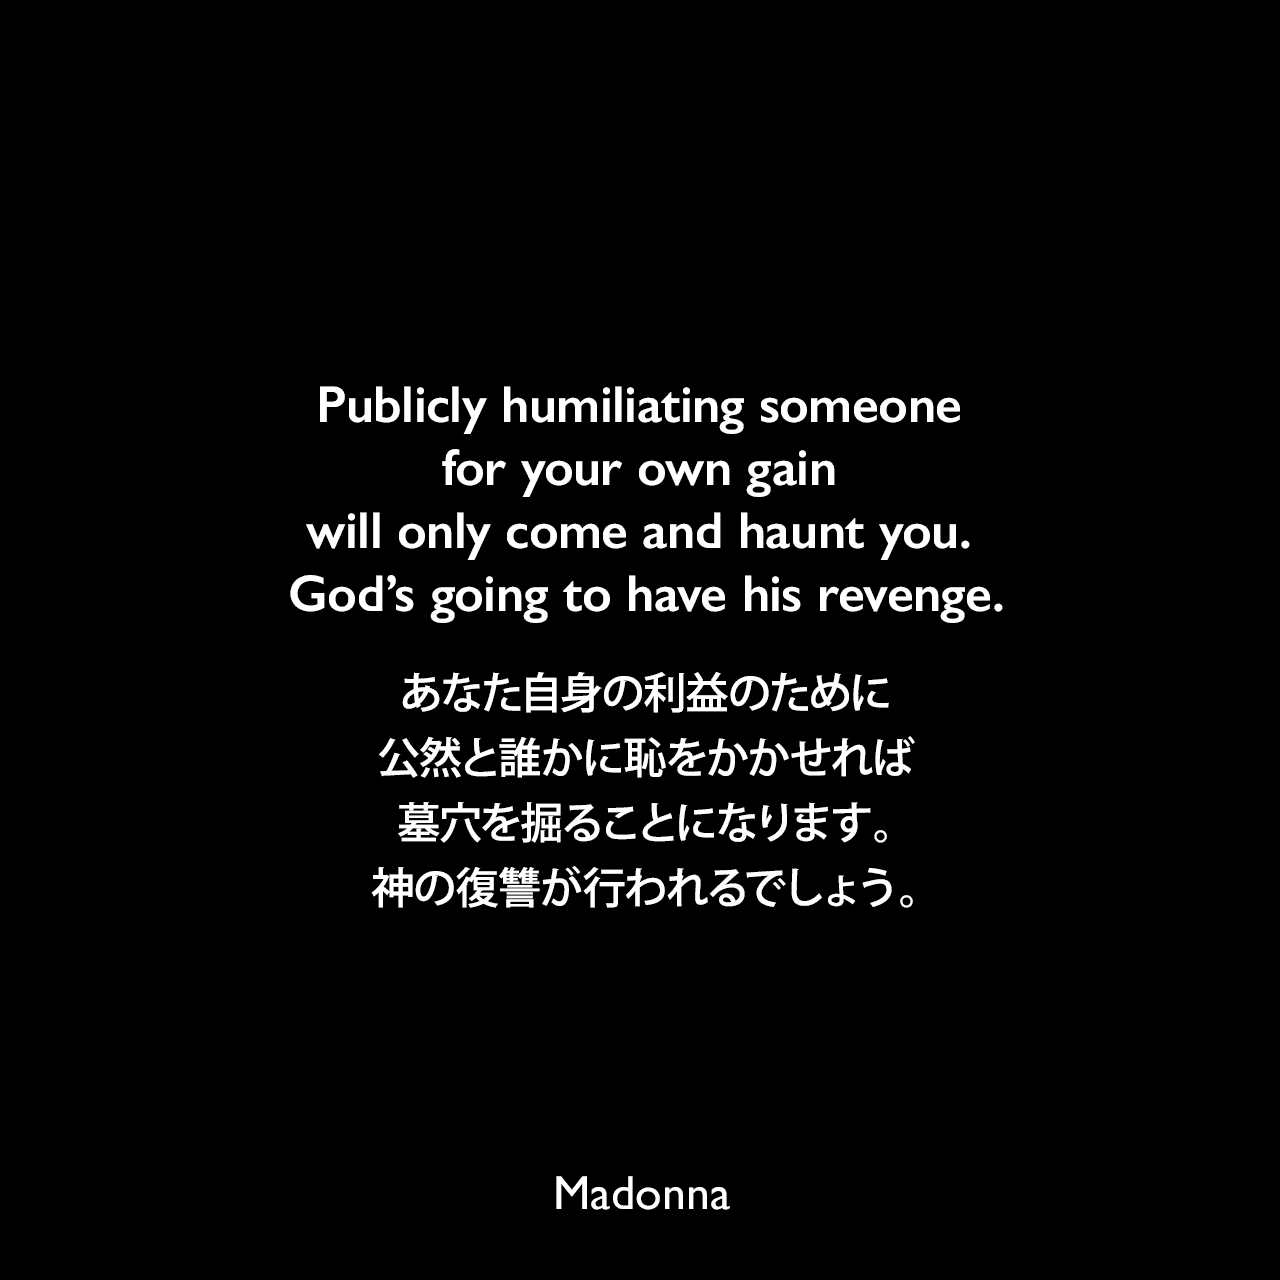 Publicly humiliating someone for your own gain will only come and haunt you. God's going to have his revenge.あなた自身の利益のために、公然と誰かに恥をかかせれば墓穴を掘ることになります。神の復讐が行われるでしょう。- 月刊音楽誌Qの2003年マドンナのインタビューよりMadonna